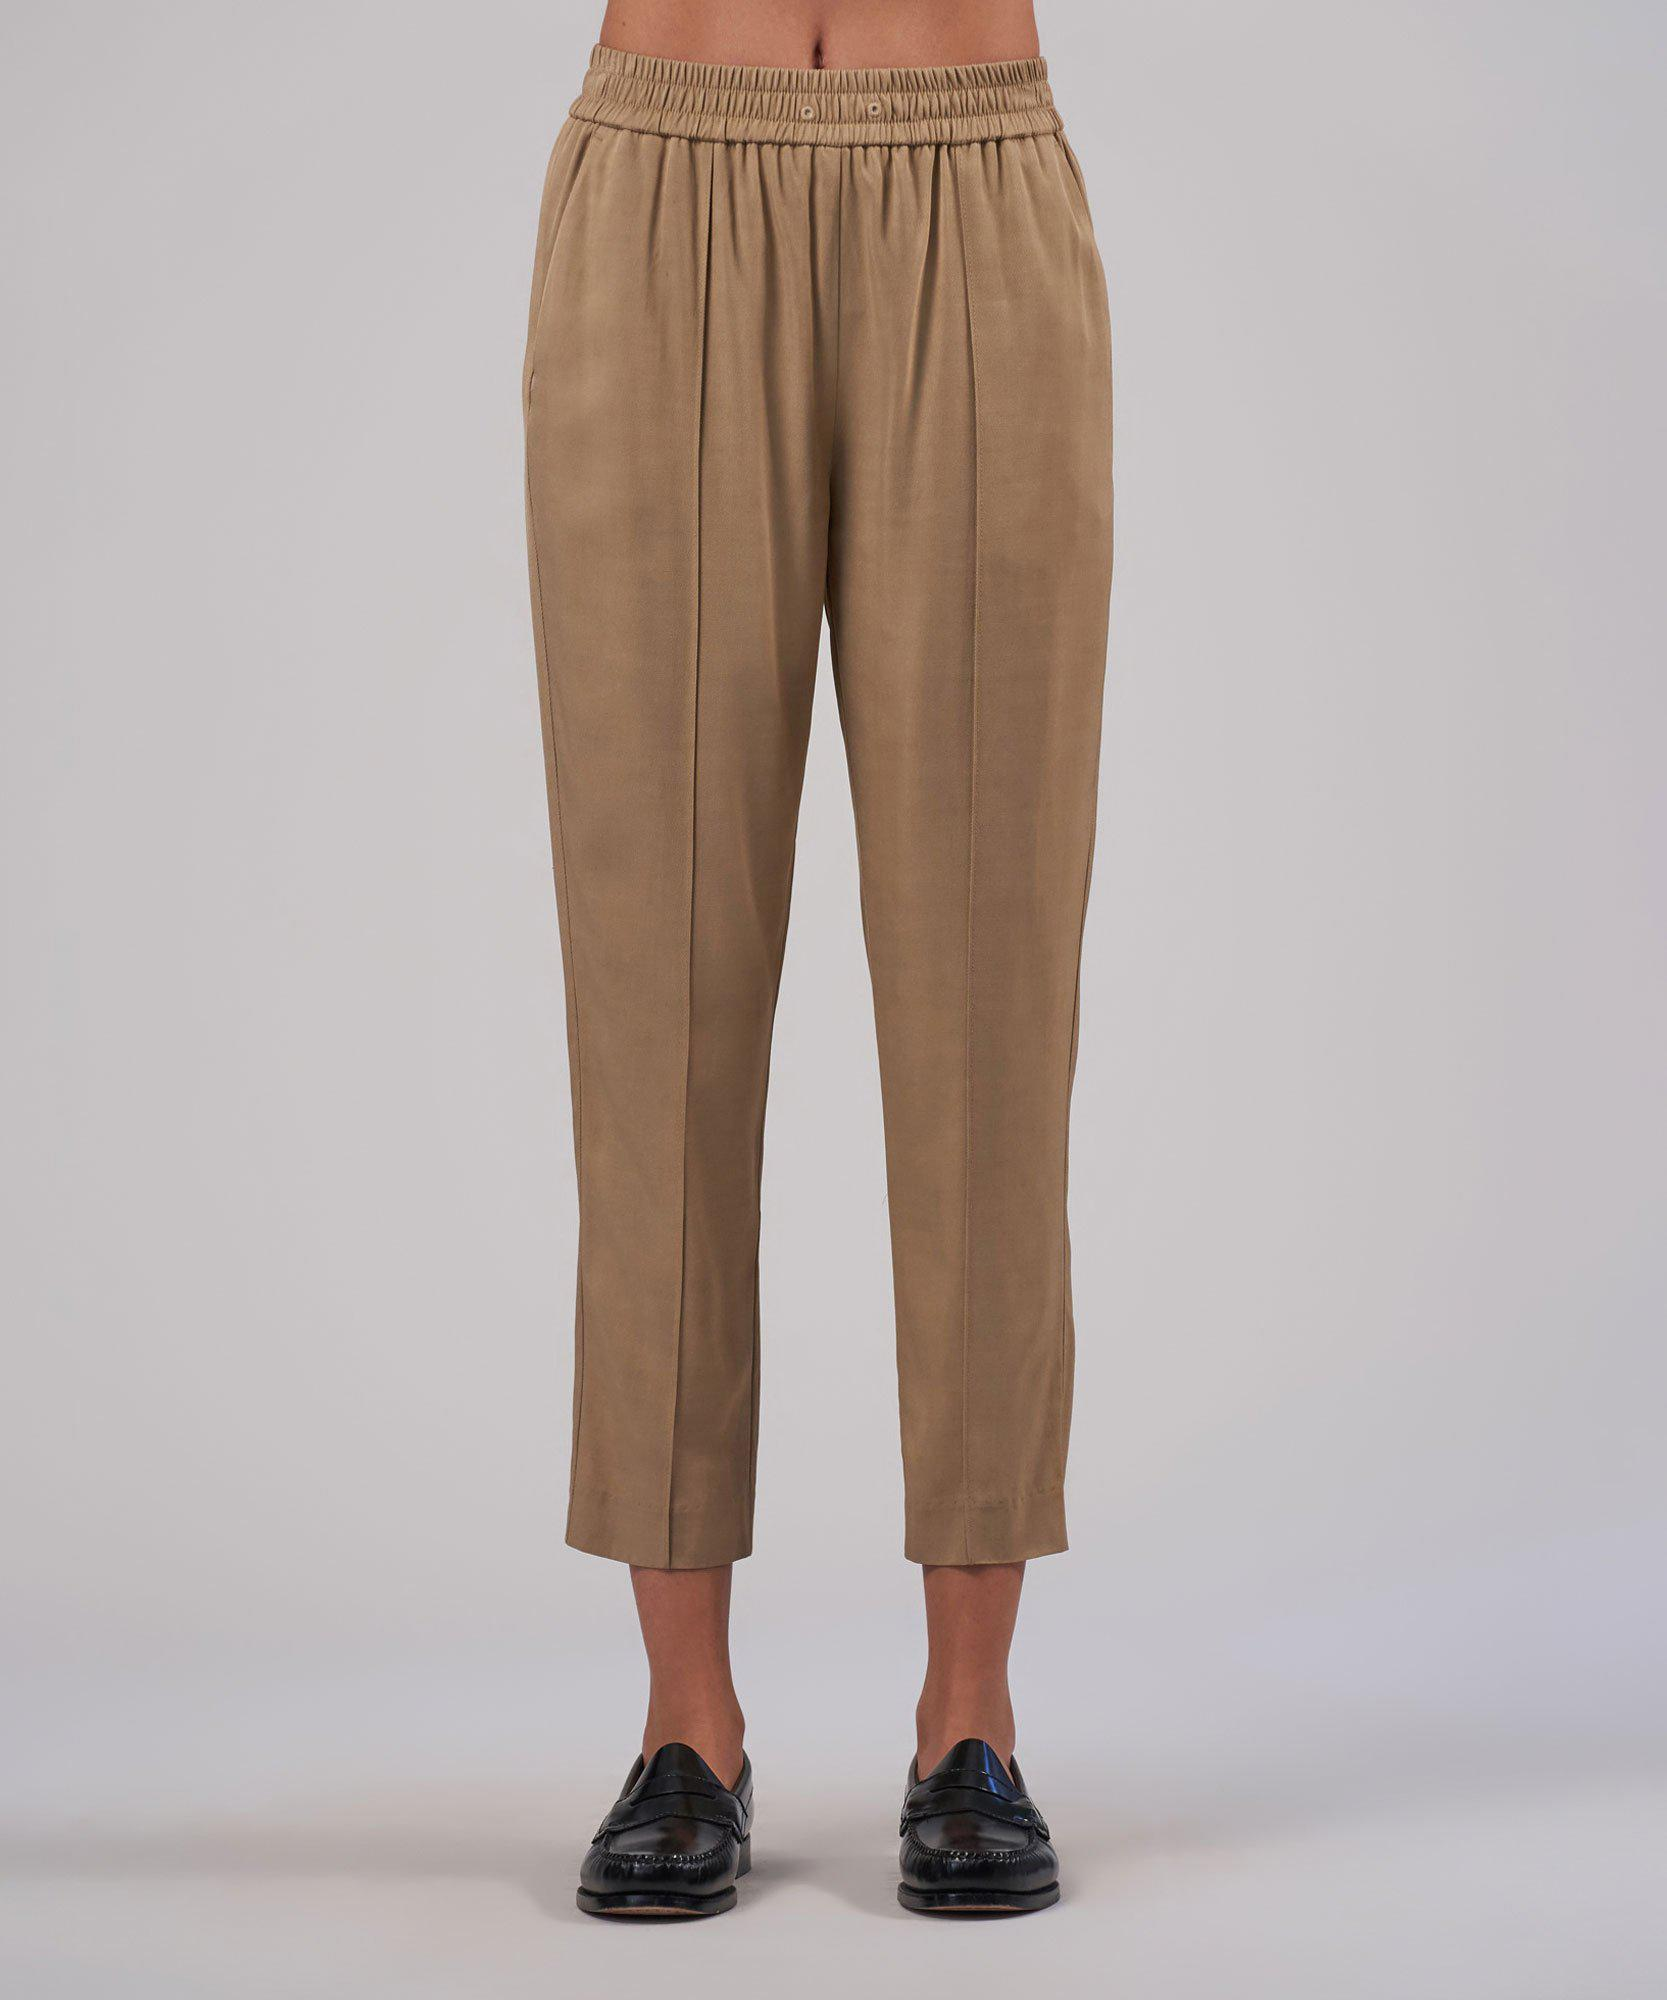 Viscose Twill Cropped Pull-On Pant - Dune